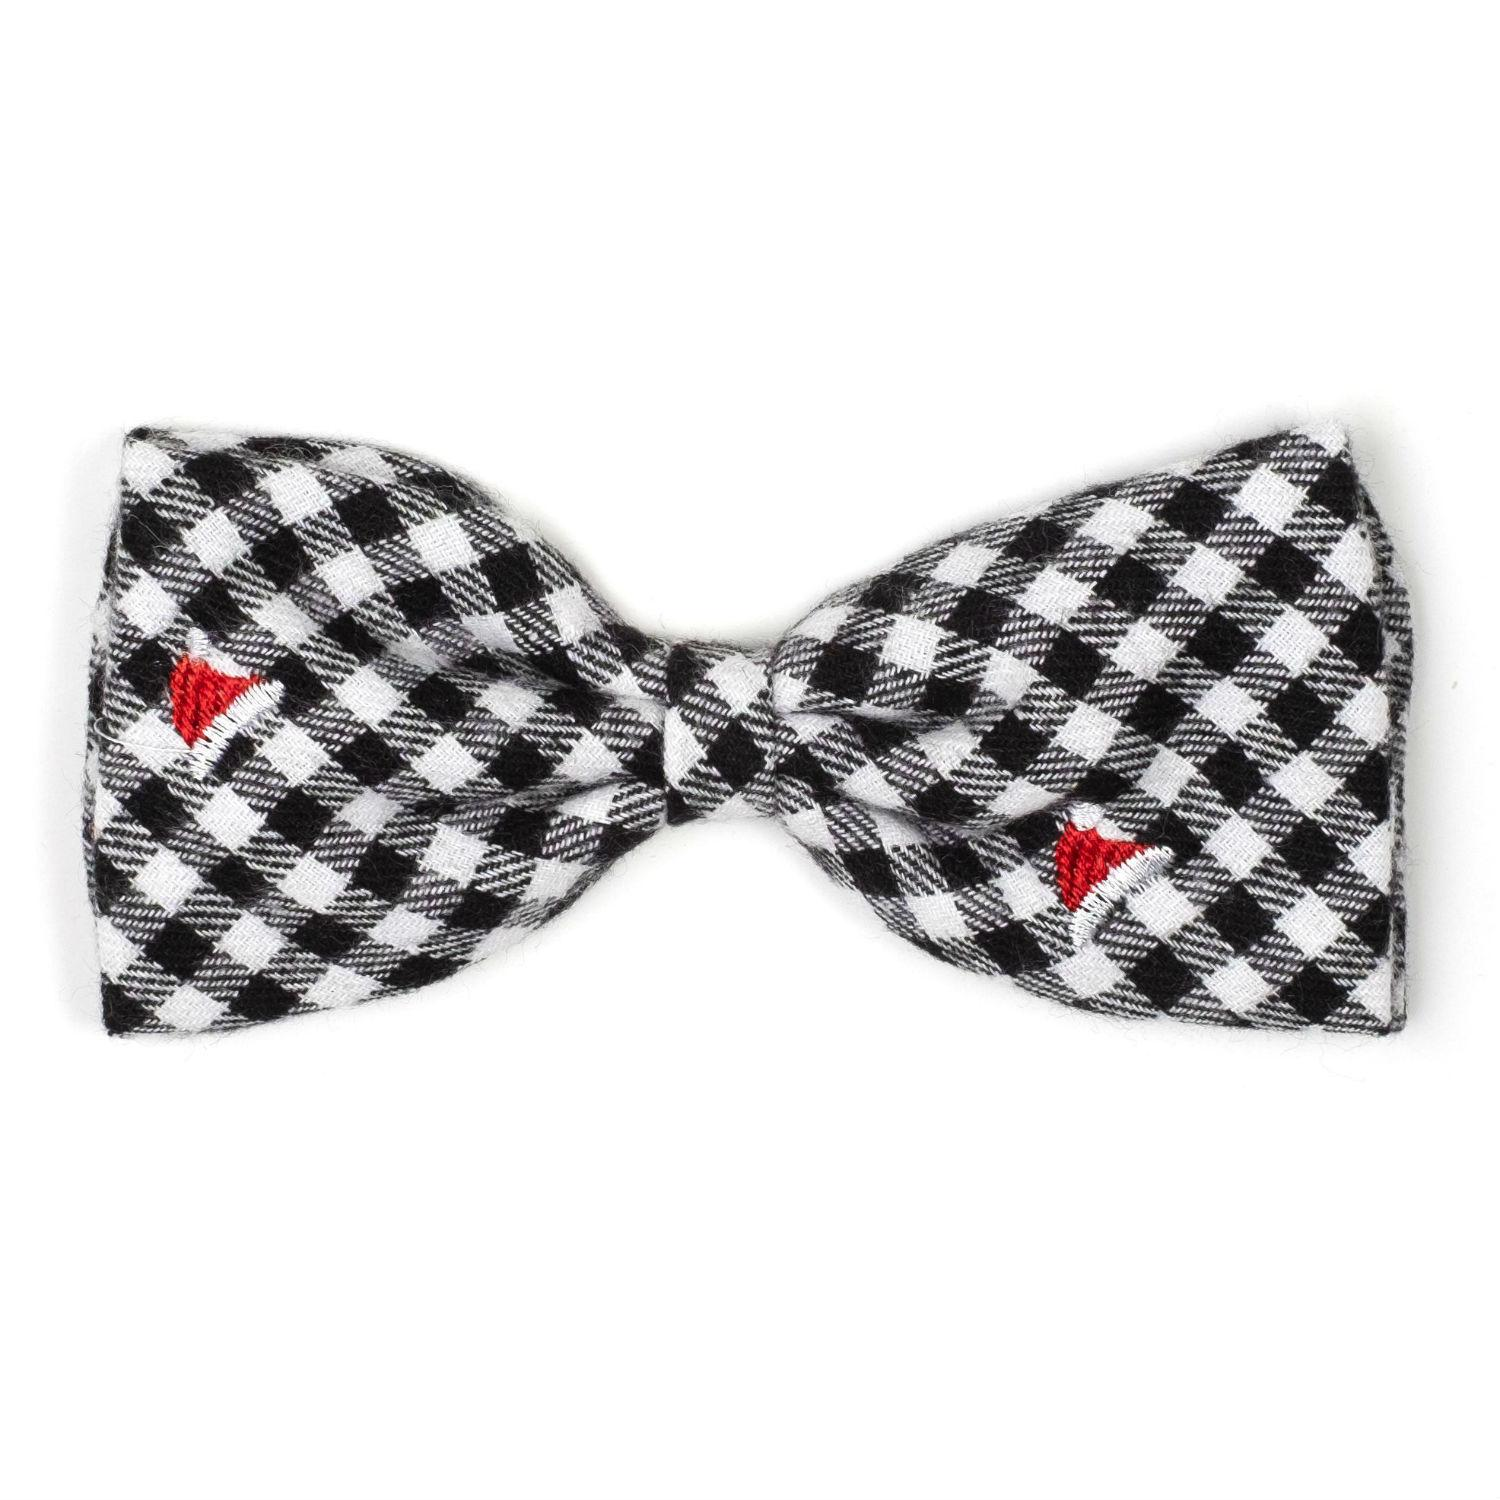 Worthy Dog Santa Hats Flannel Check Dog and Cat Bow Tie Collar Attachment